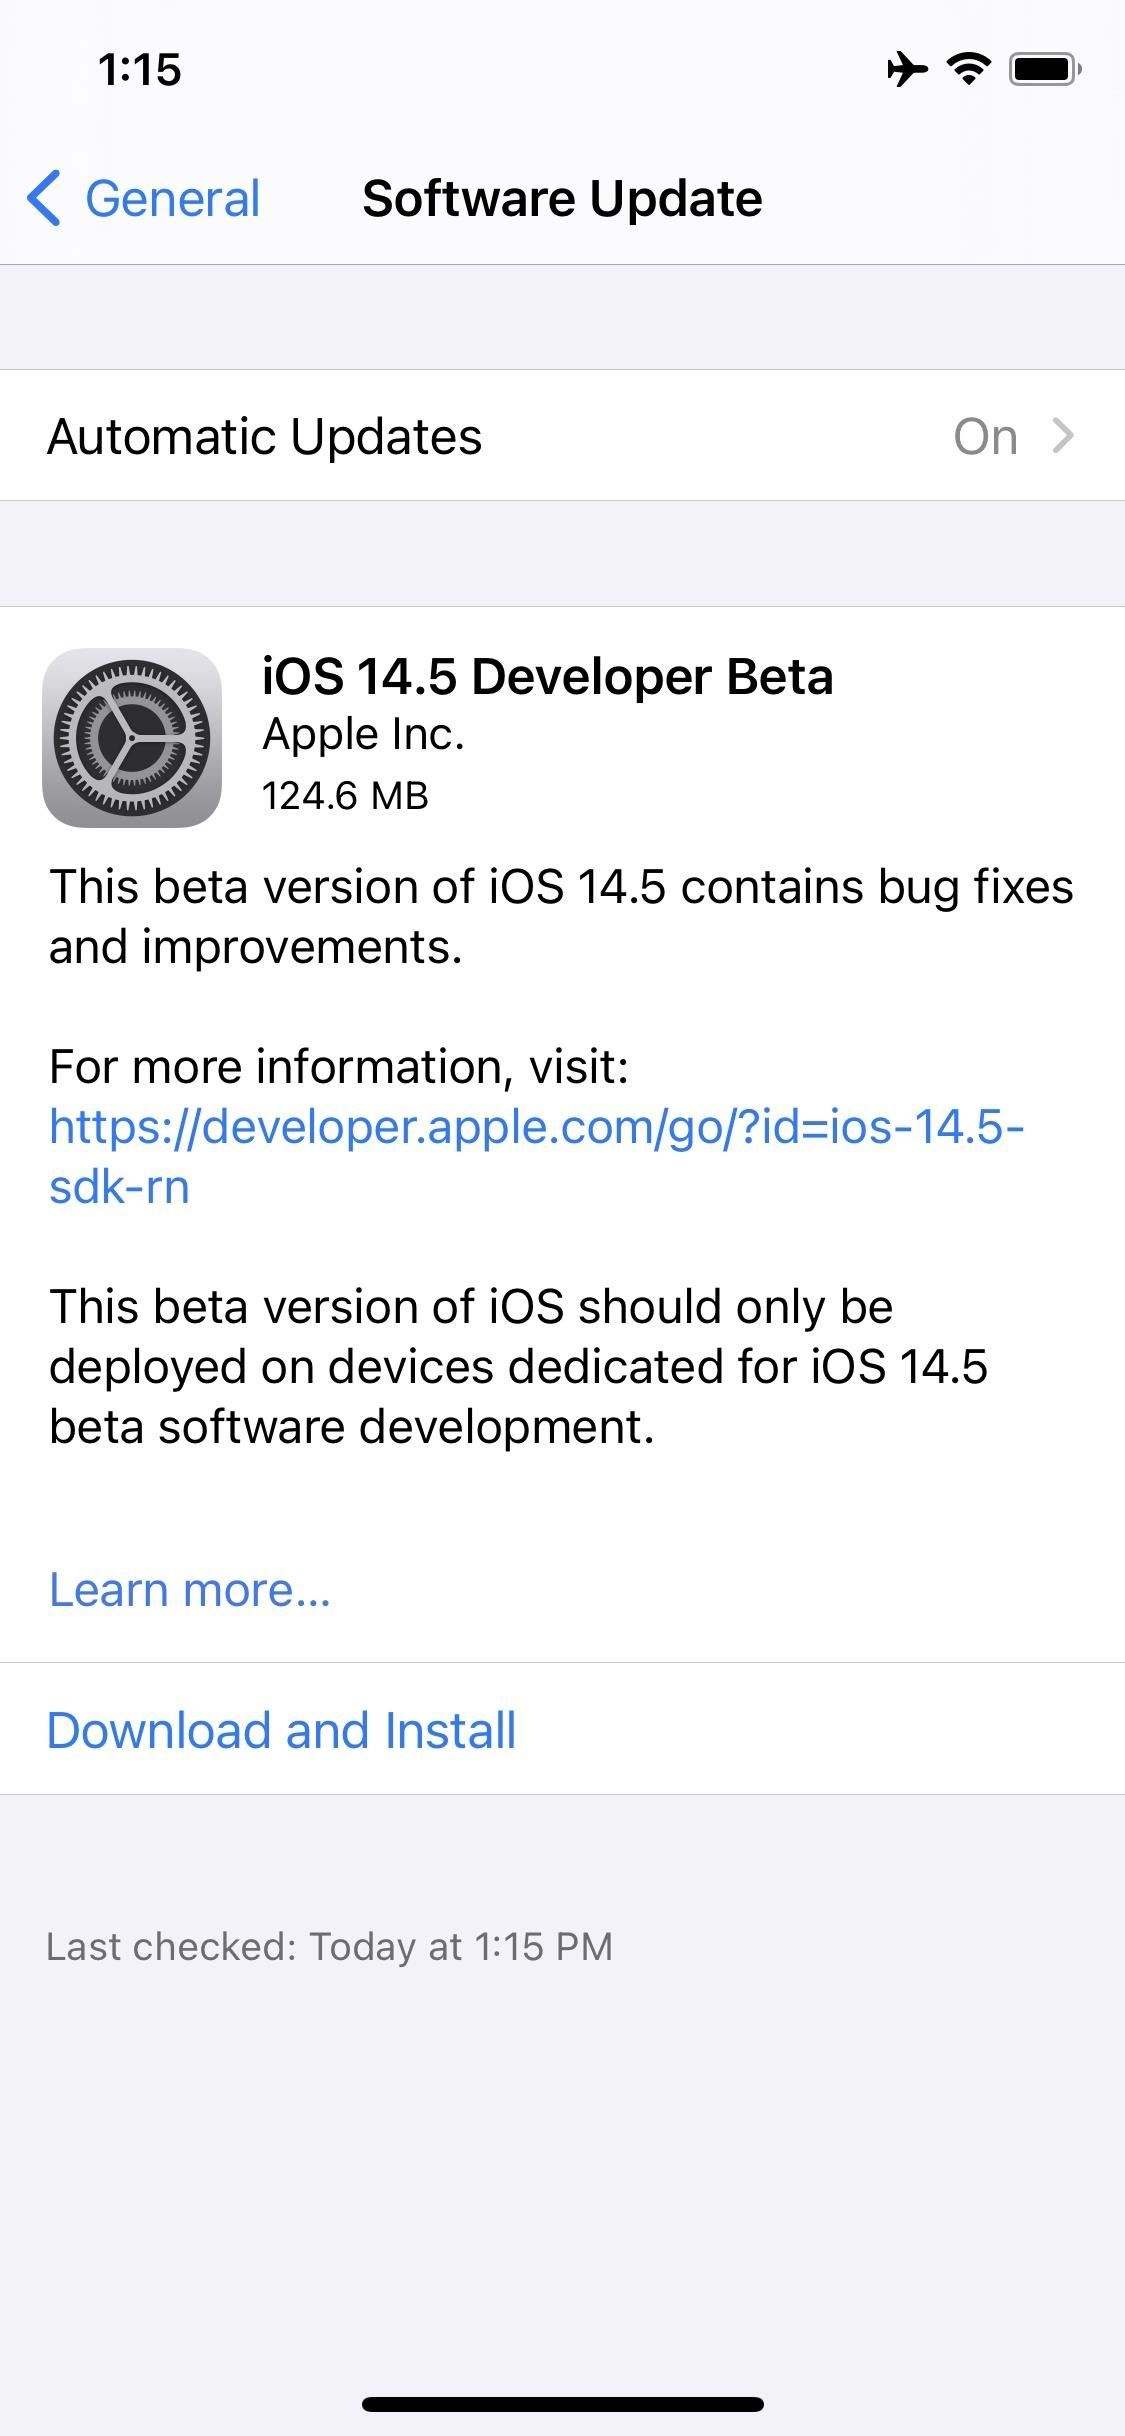 Apple Releases First iOS 14.5 Developer Beta for iPhone, Adds Support for Xbox Series X & PS5 DualSense Controllersc